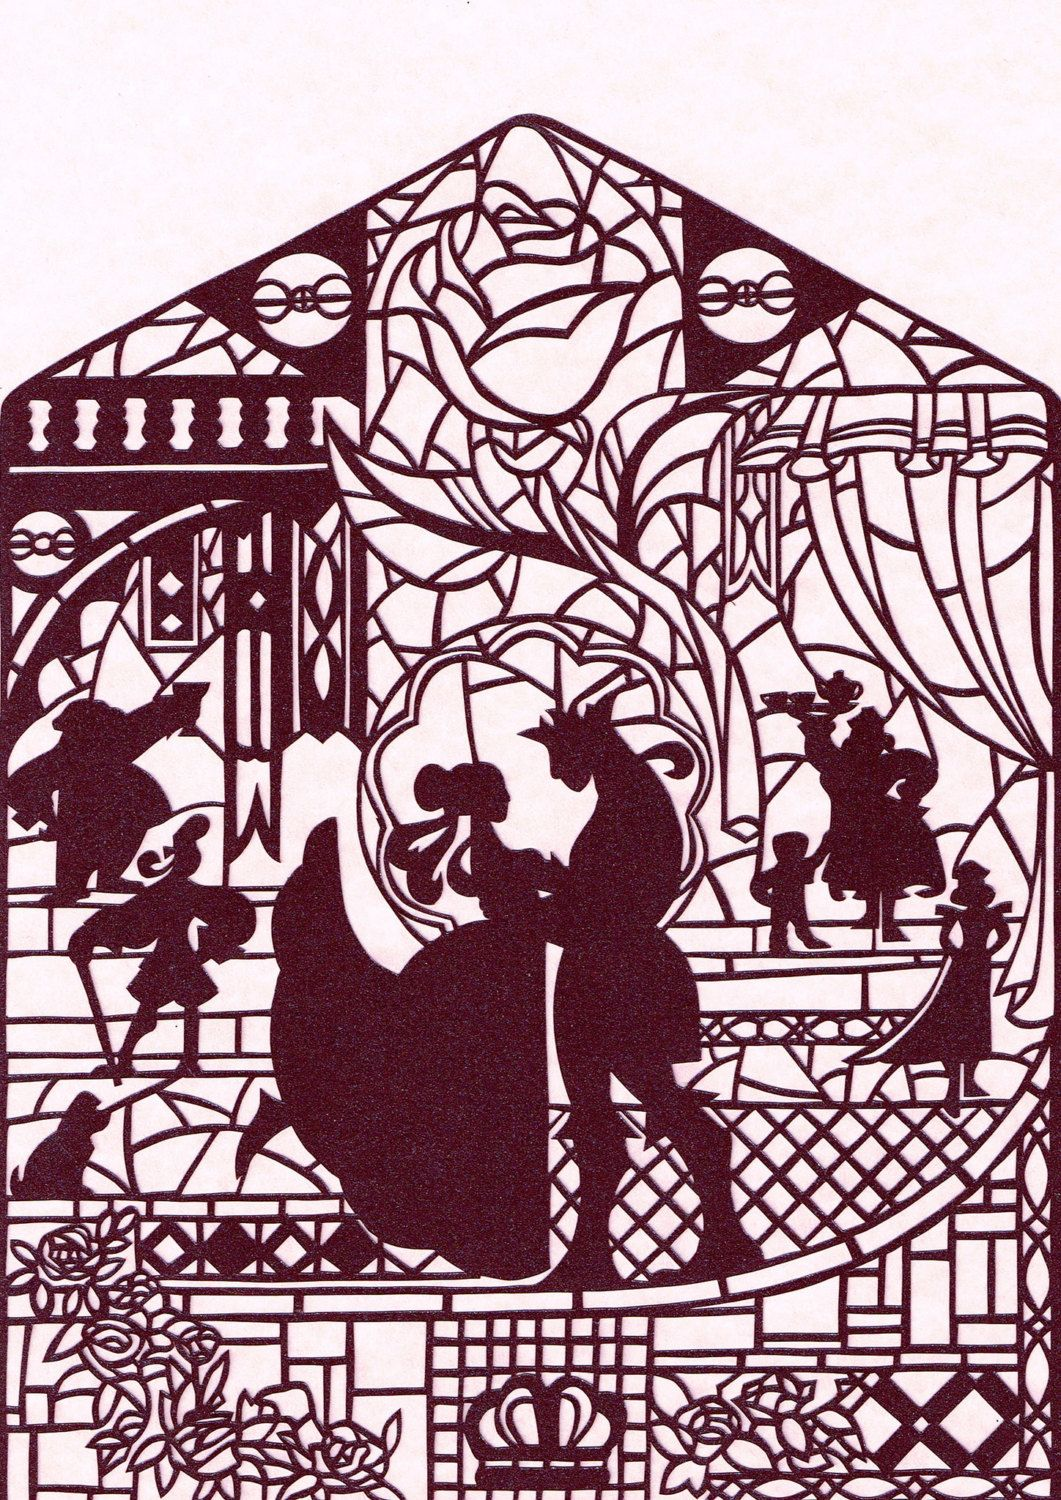 Papercut art print beauty and the beast by lagodossonhos on etsy